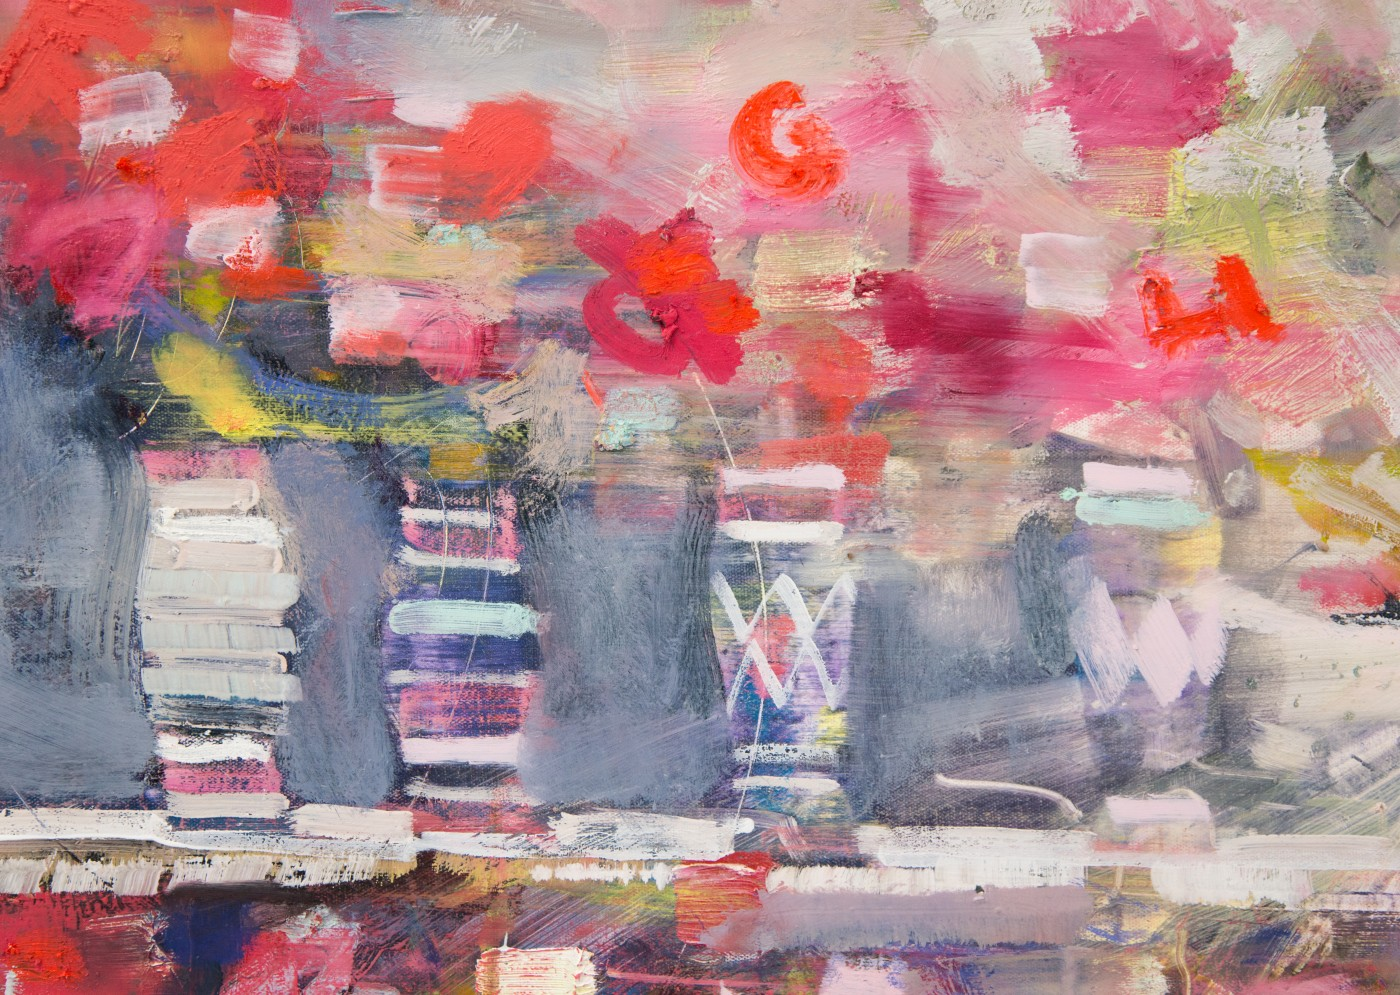 WALLFLOWERS, MALFLOWERS  Daybreak #5  (detail), 2018 